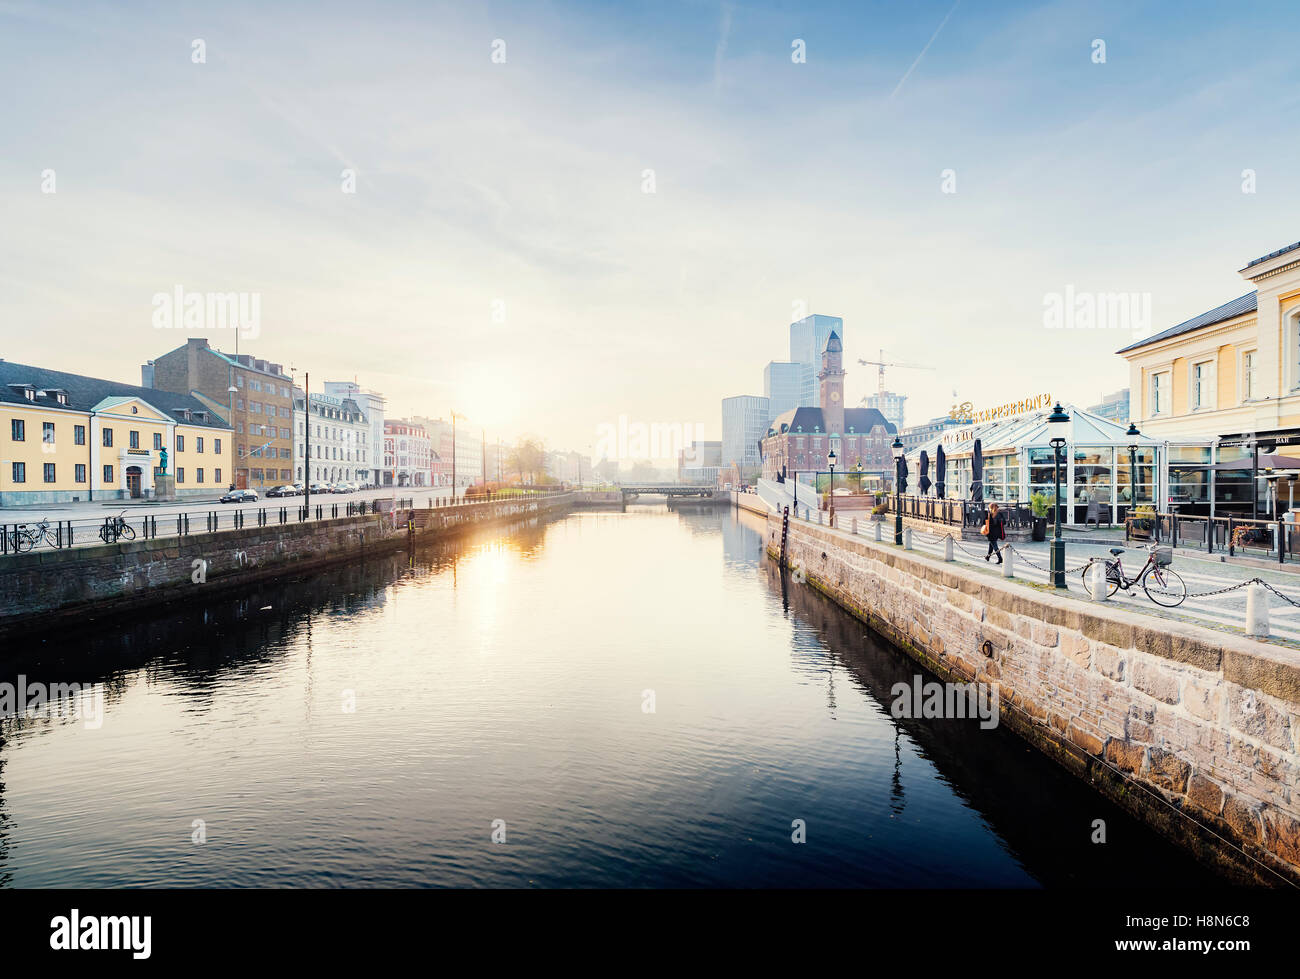 Malmo Live concert hall and Central Station by river, Sweden - Stock Image